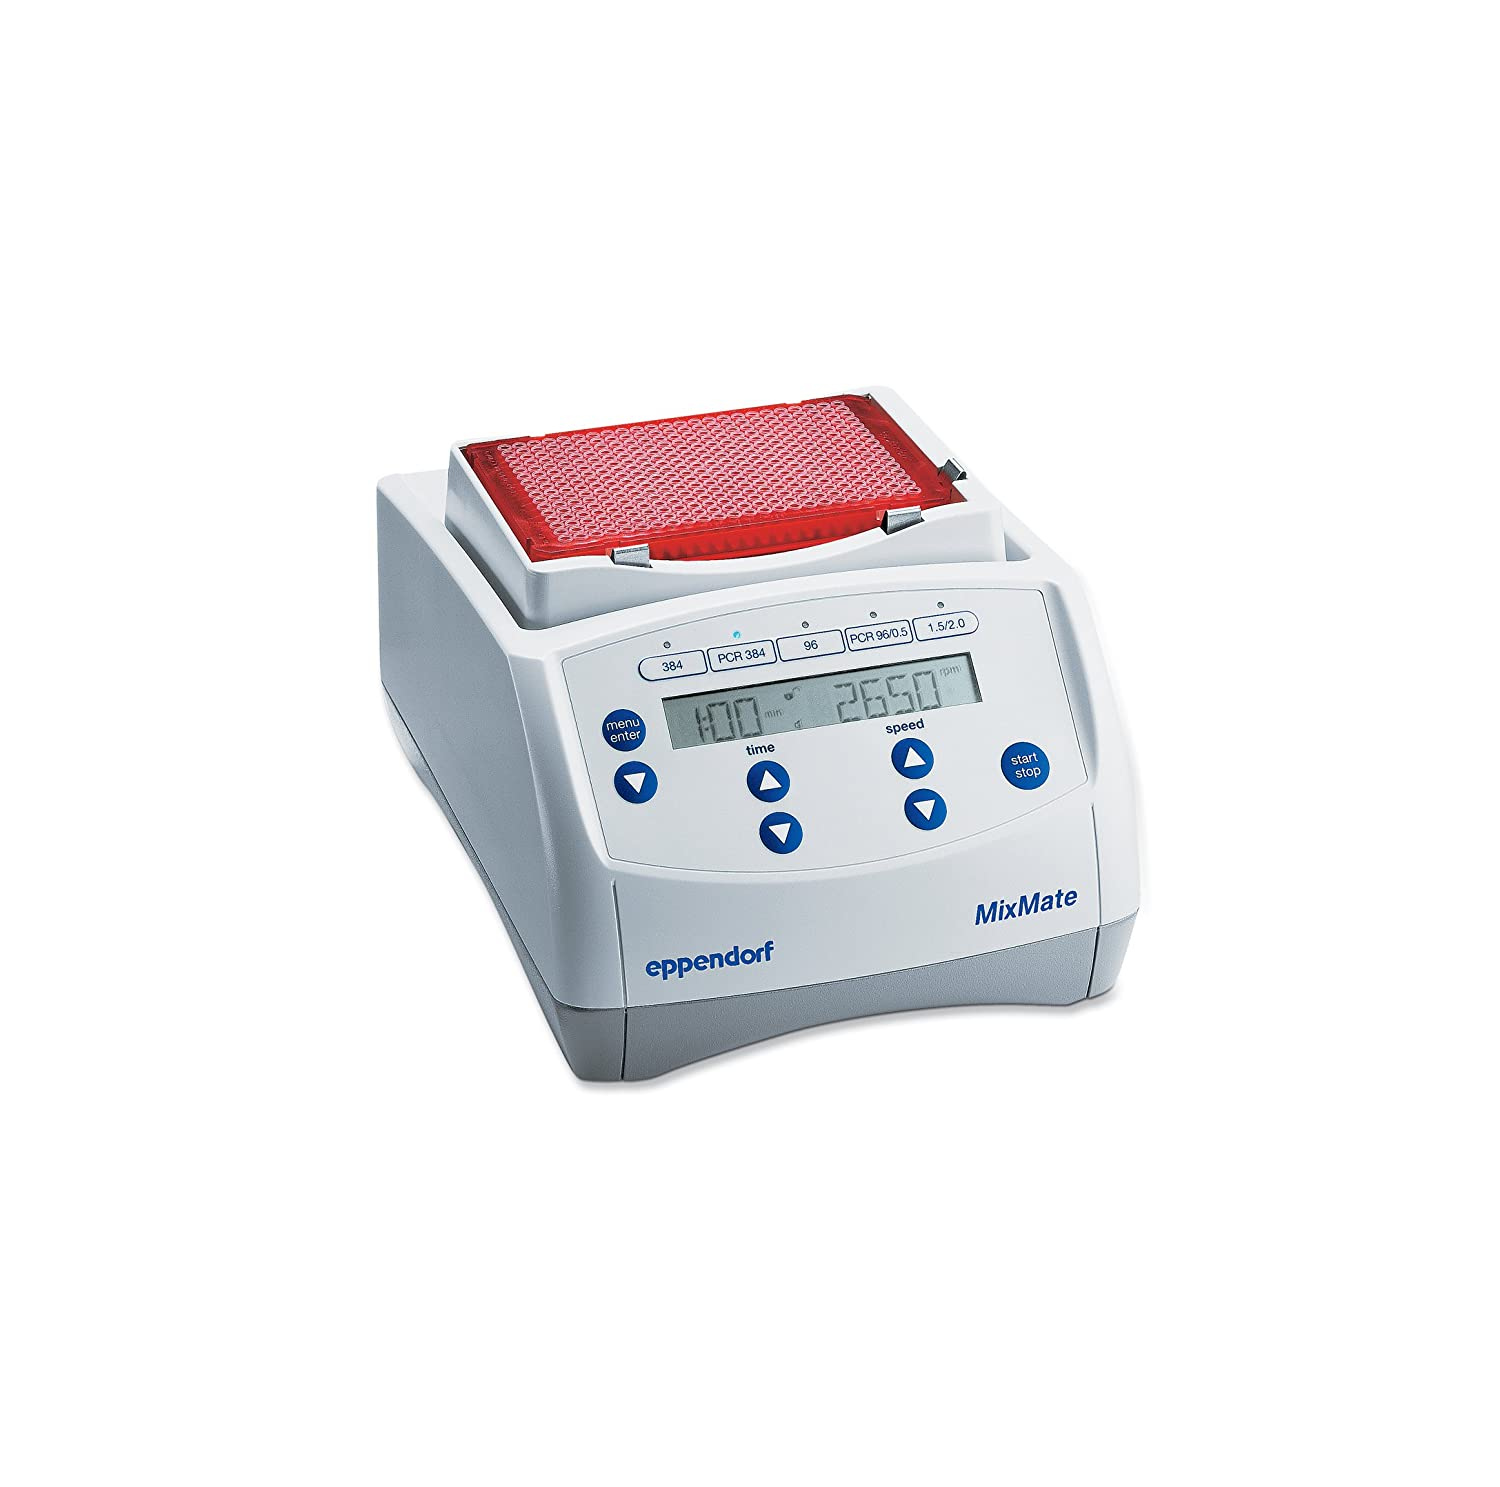 Eppendorf 5353000170 MixMate with 1.5/2, 0.5, and 0.2ml Tube Adapters, Includes Two FREE Boxes of 96-well PCR Plates (25 pcs. semi-skirted, 20 pcs. unskirted)